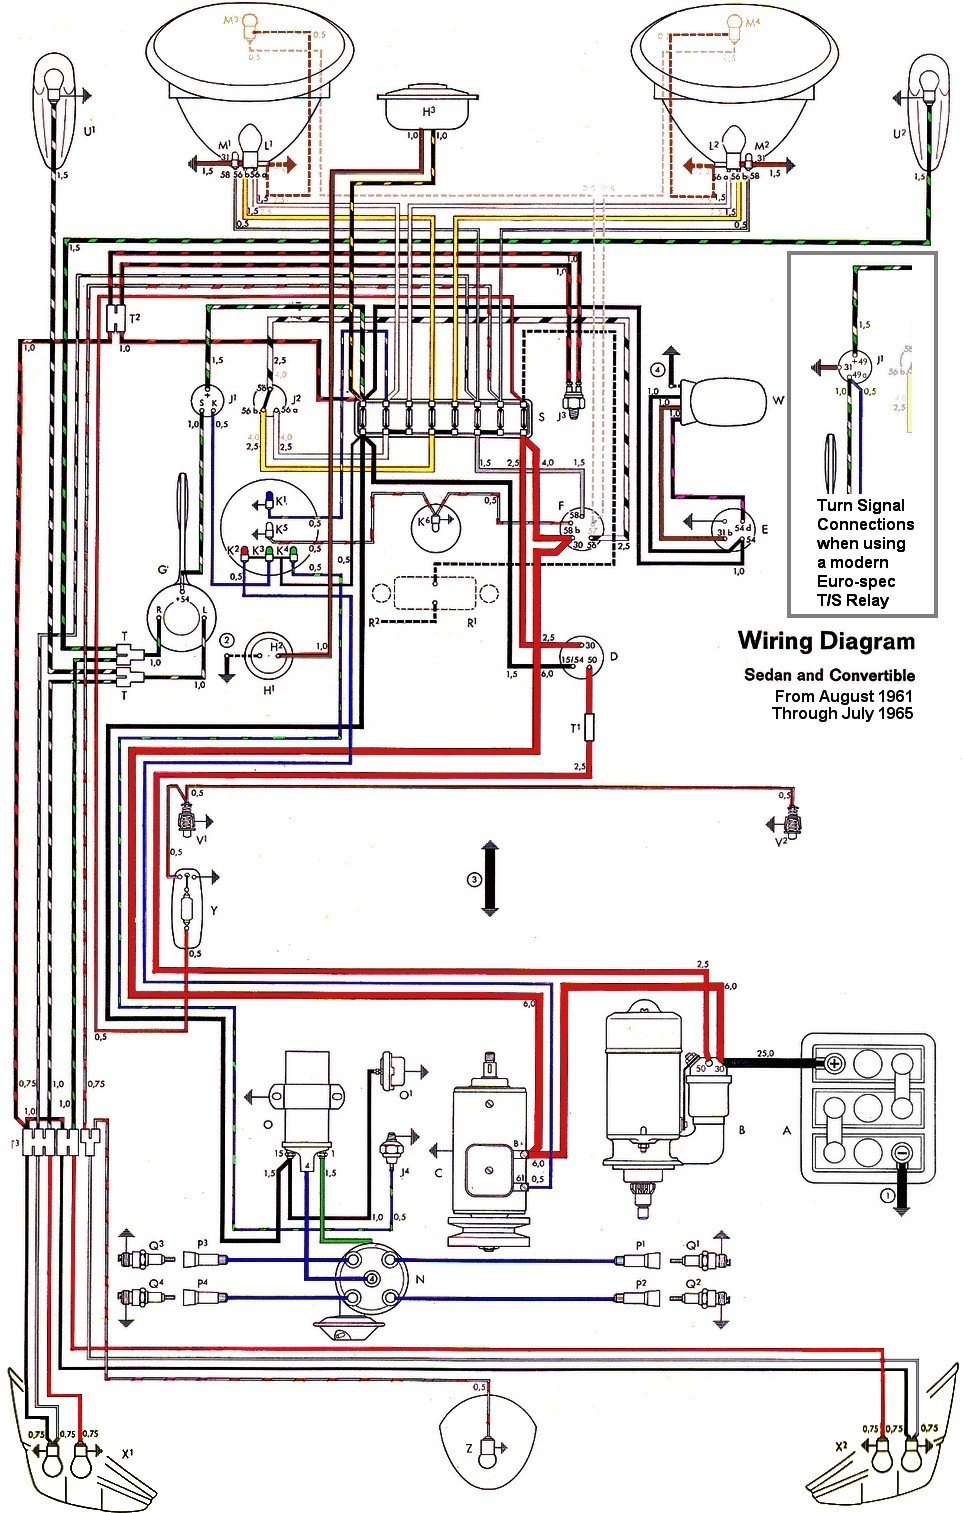 bug_62 65withinset thesamba com type 1 wiring diagrams vw bug wiring diagram at eliteediting.co